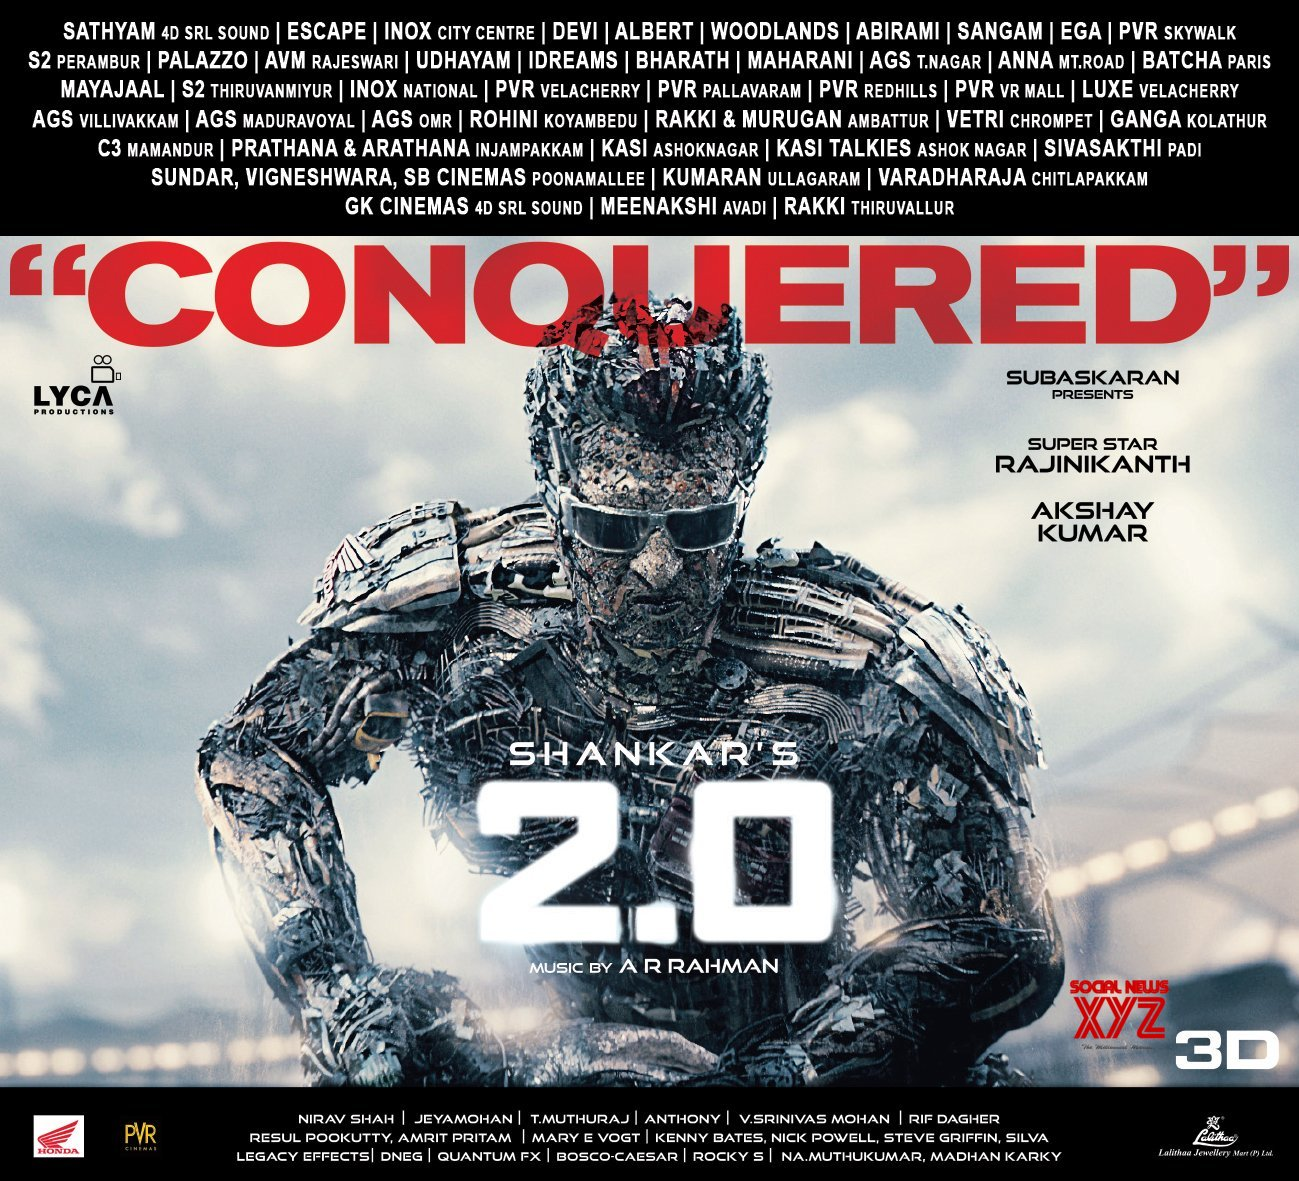 2.0 Movie Conquered Posters